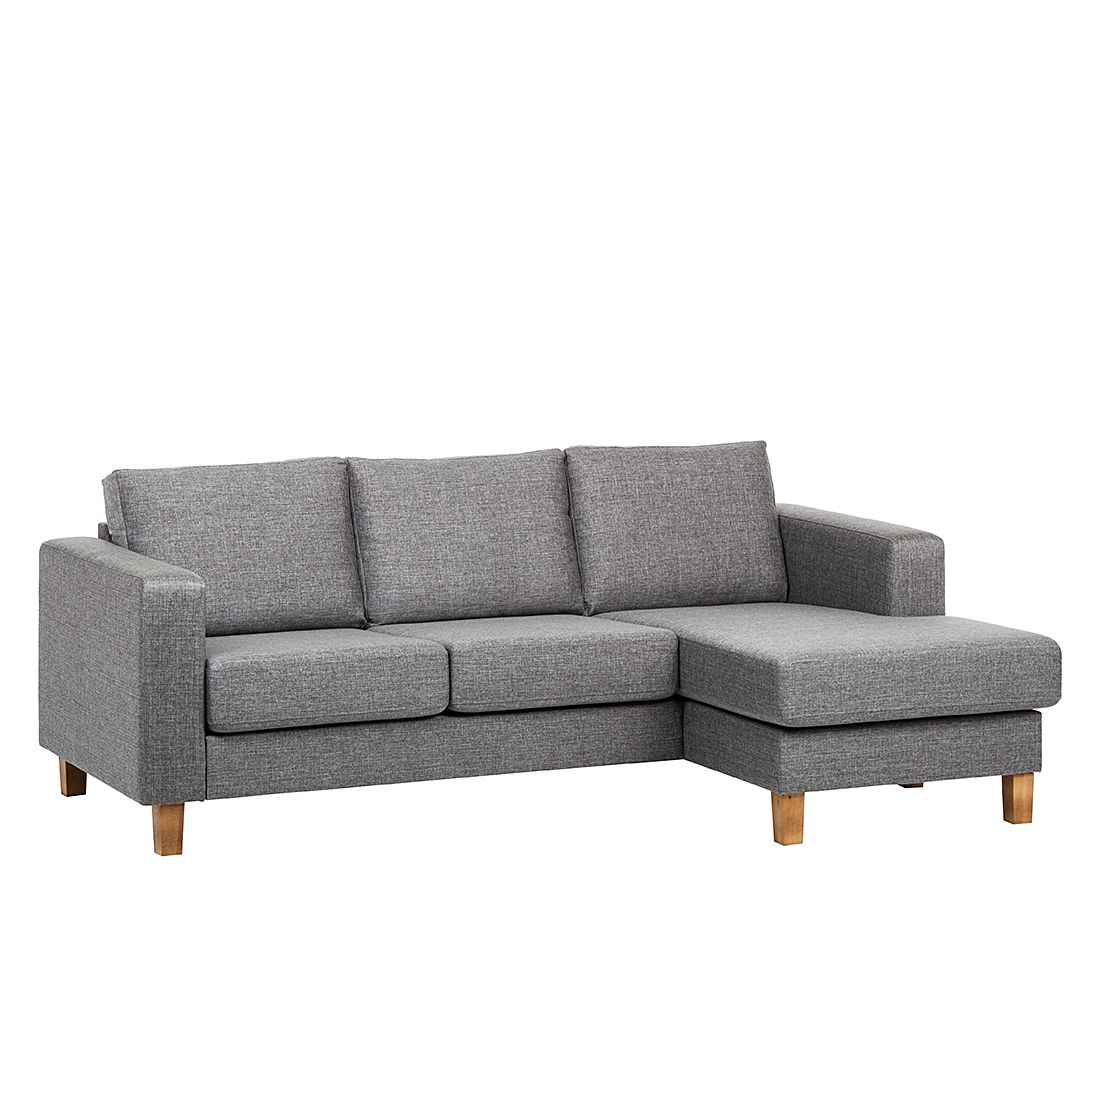 sofa bezug ecksofa mit ottomane montego ecksofa sofa couch mit ottomane mit kissen und hocker. Black Bedroom Furniture Sets. Home Design Ideas